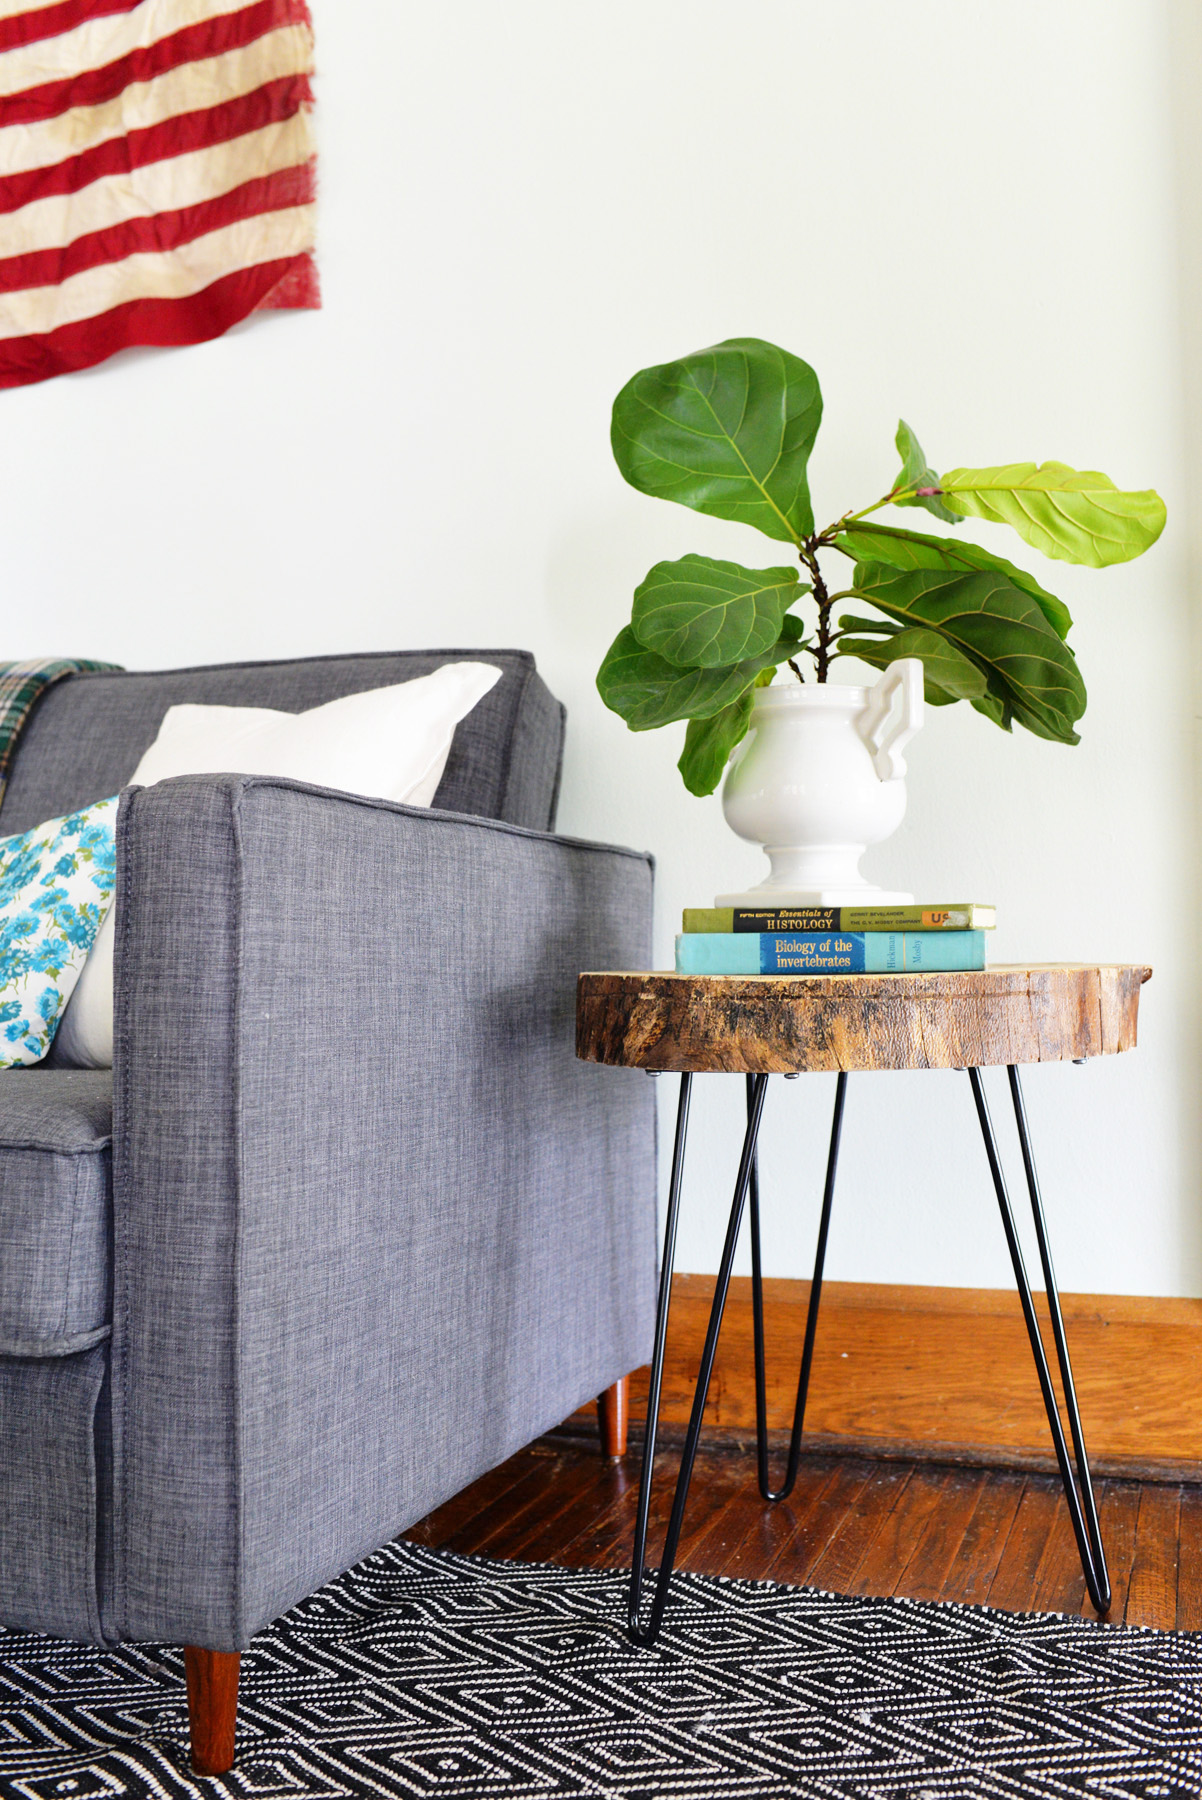 diy side table with a wooden slab and